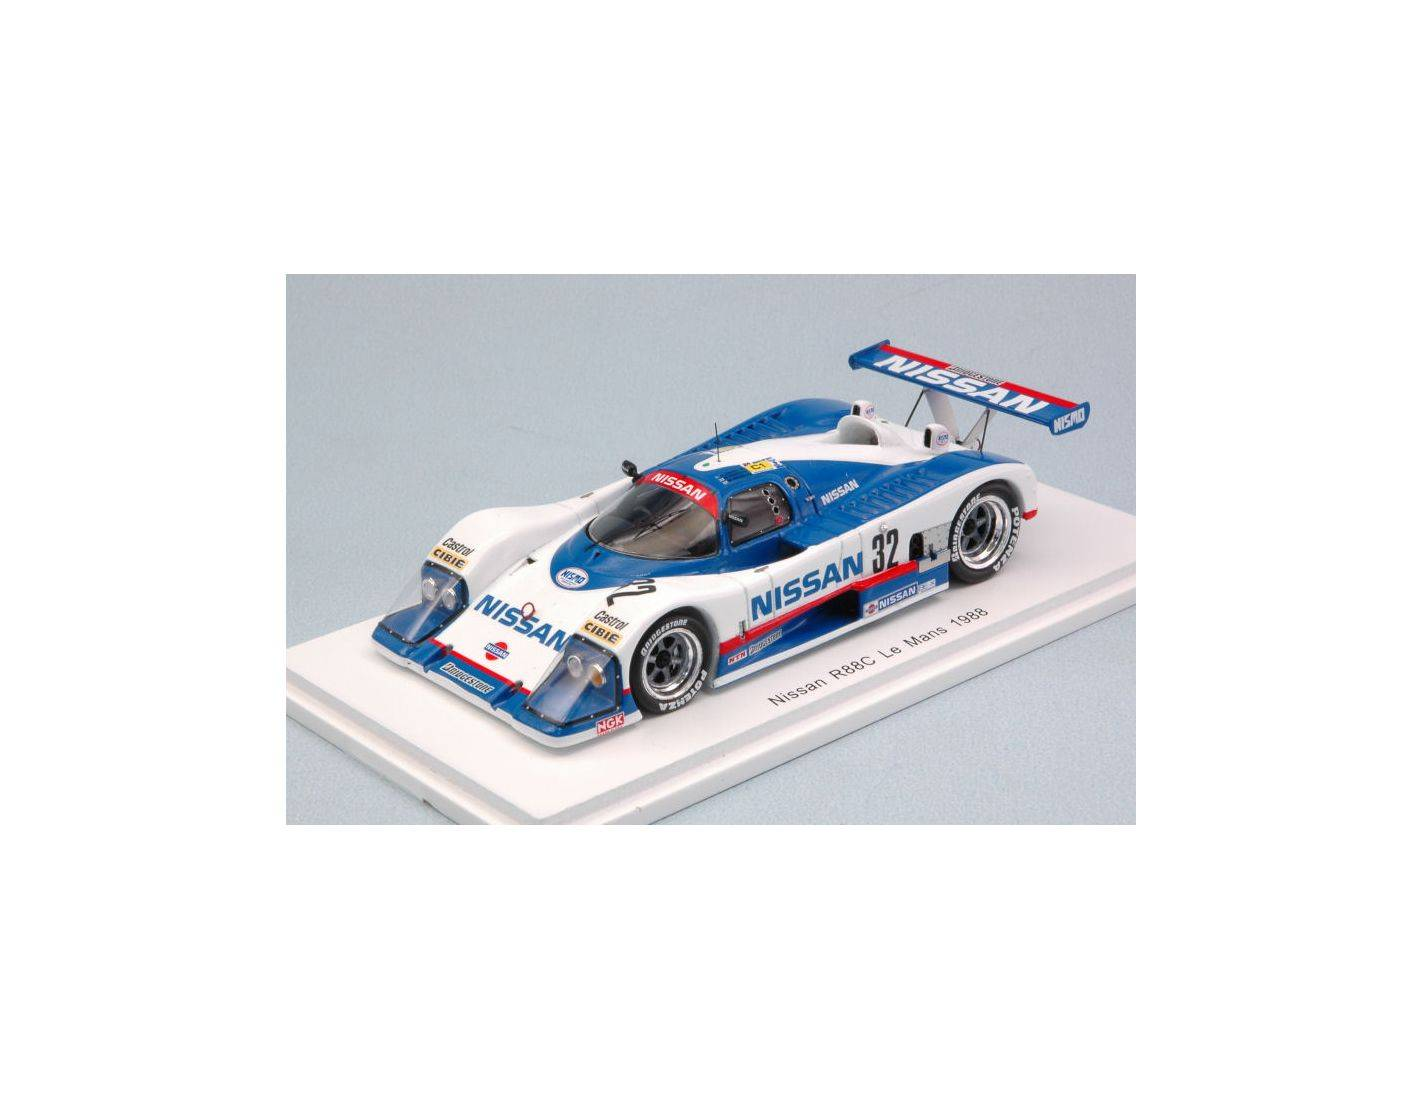 Spark Model S5081 NISSAN R88C N.32 14th LM 1988 A-GRICE-M.WILDS-W.PERCY 1:43 Modellino